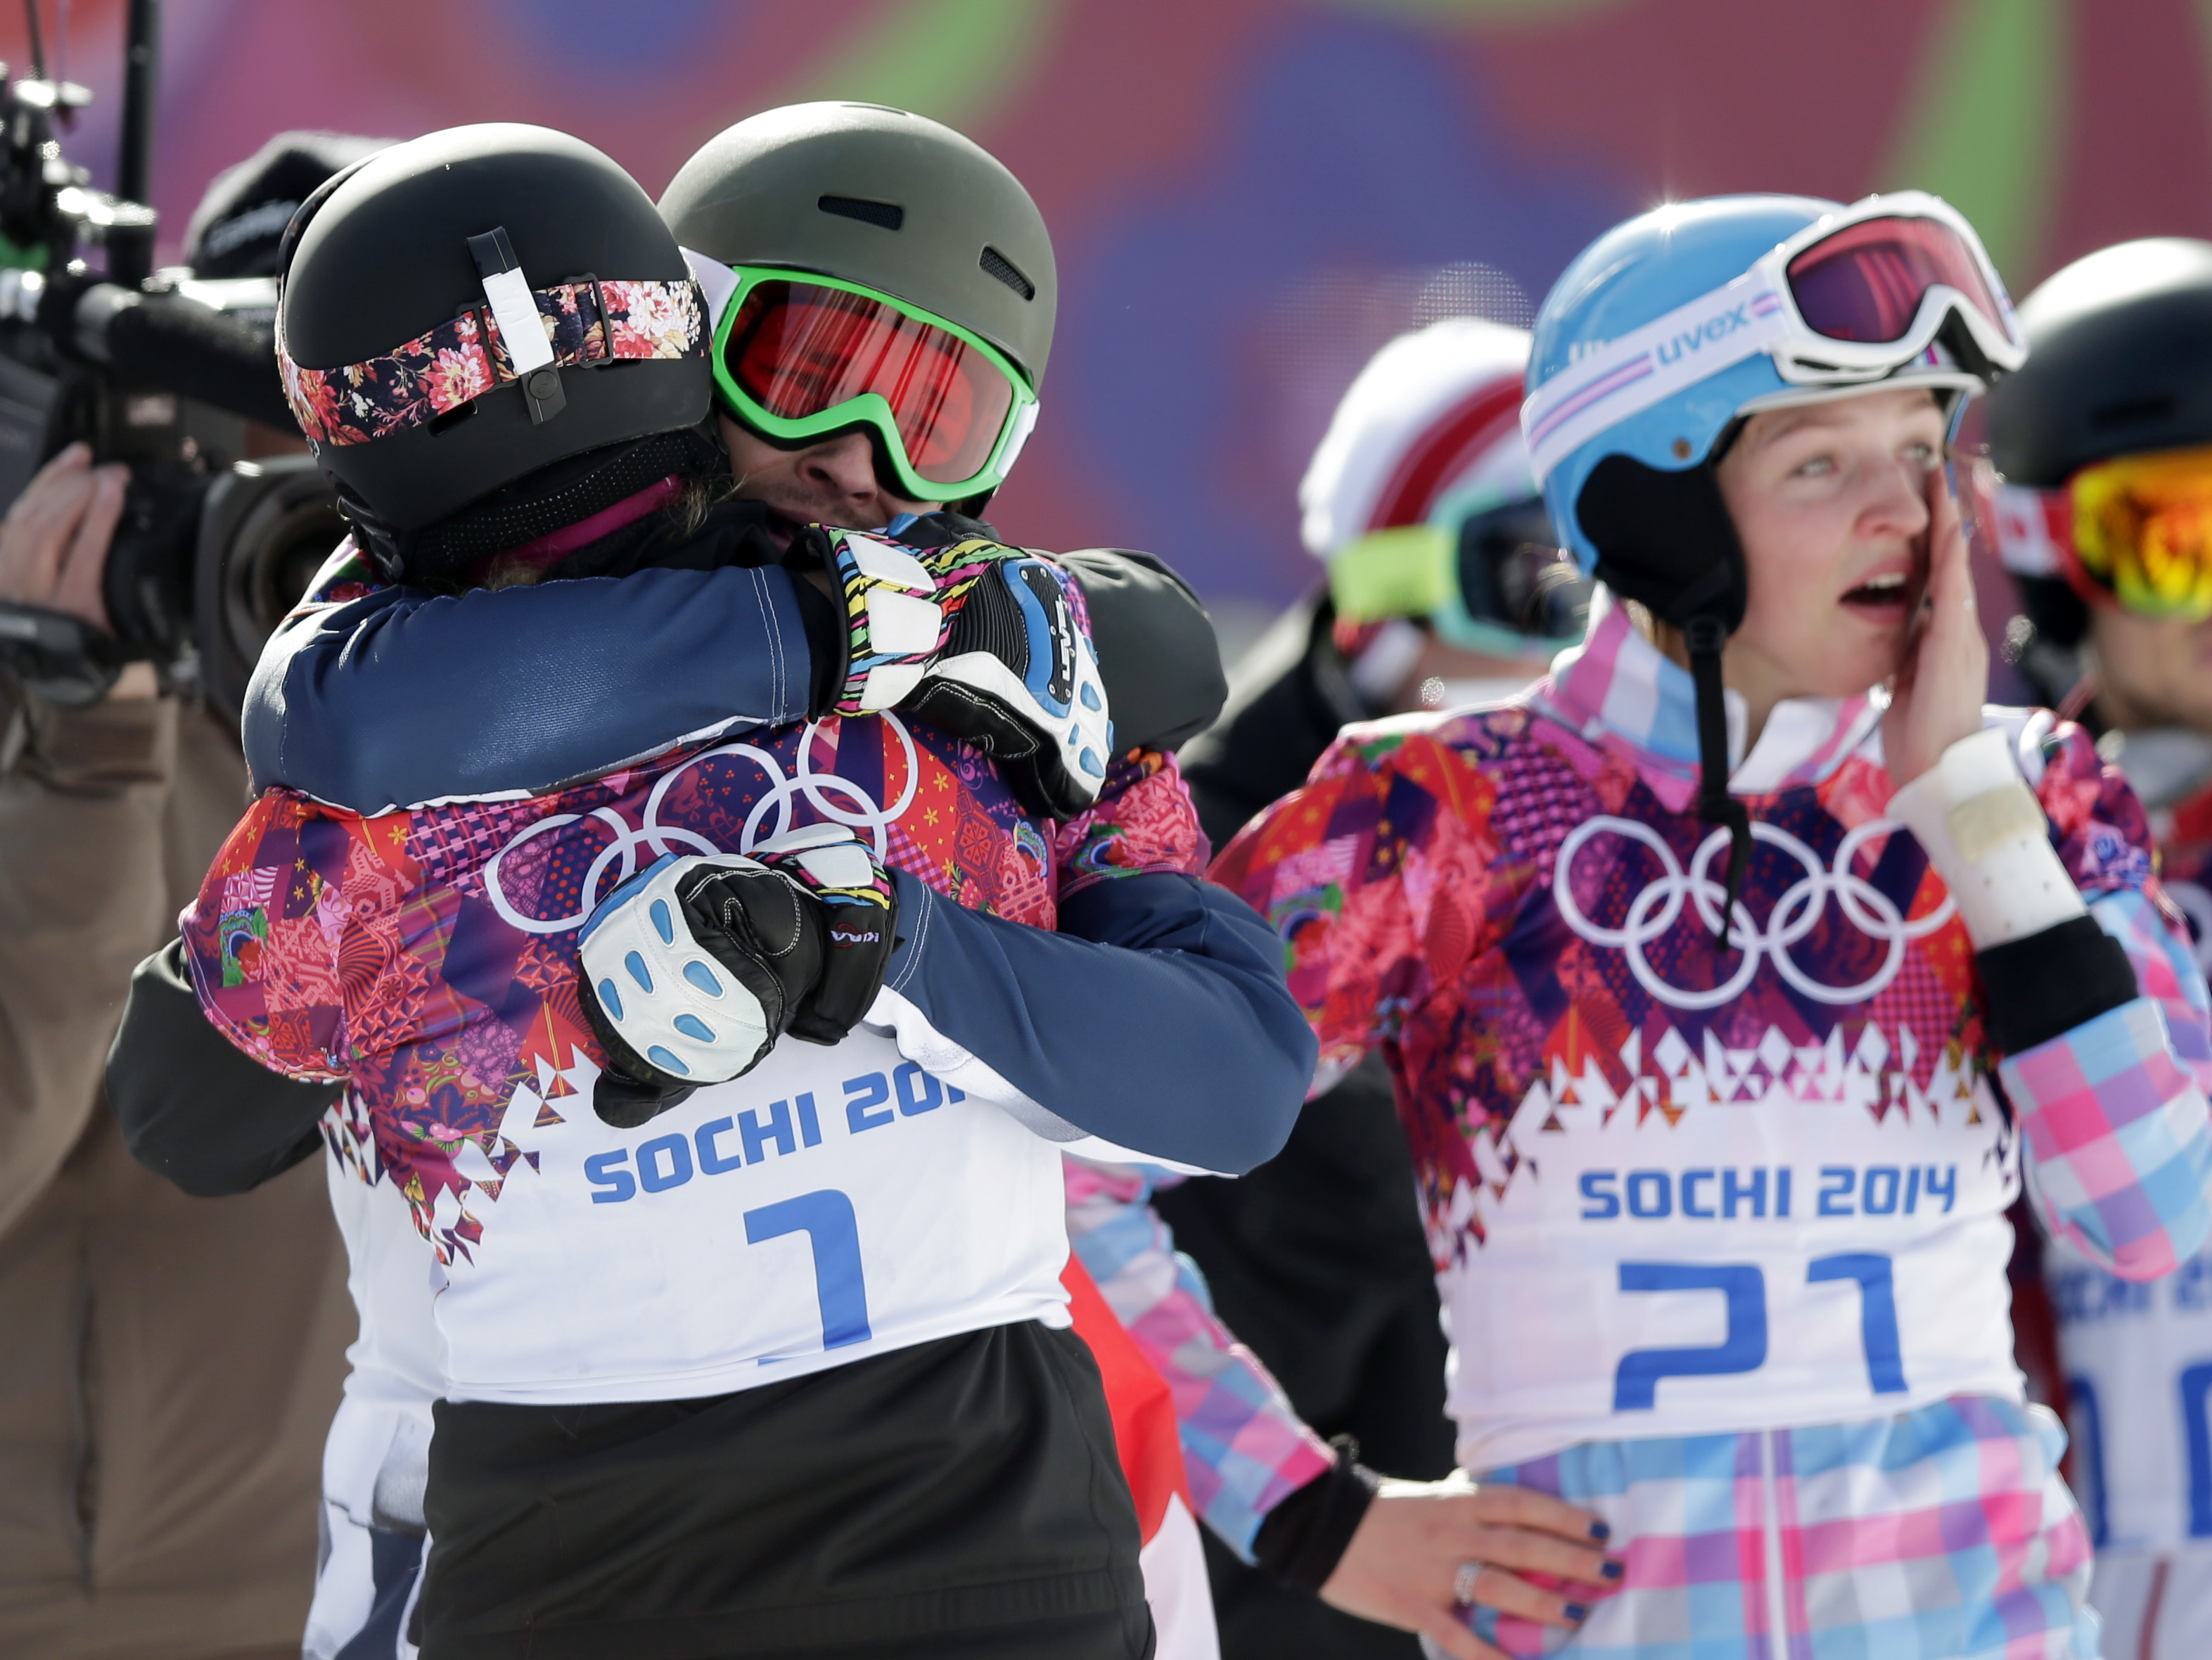 Men's snowboard parallel giant slalom gold medalist Russia's Vic Wild, center, celebrates with women's snowboard parallel giant slalom gold medalist Patrizia Kummer of Switzerland, left, as his wife and bronze medalist in the women's snowboard parallel giant slalom final, Russia's Alena Zavarzina also celebrates at right, at the Rosa Khutor Extreme Park, at the 2014 Winter Olympics, Wednesday, Feb. 19, 2014, in Krasnaya Polyana, Russia.  (AP Photo/Andy Wong)